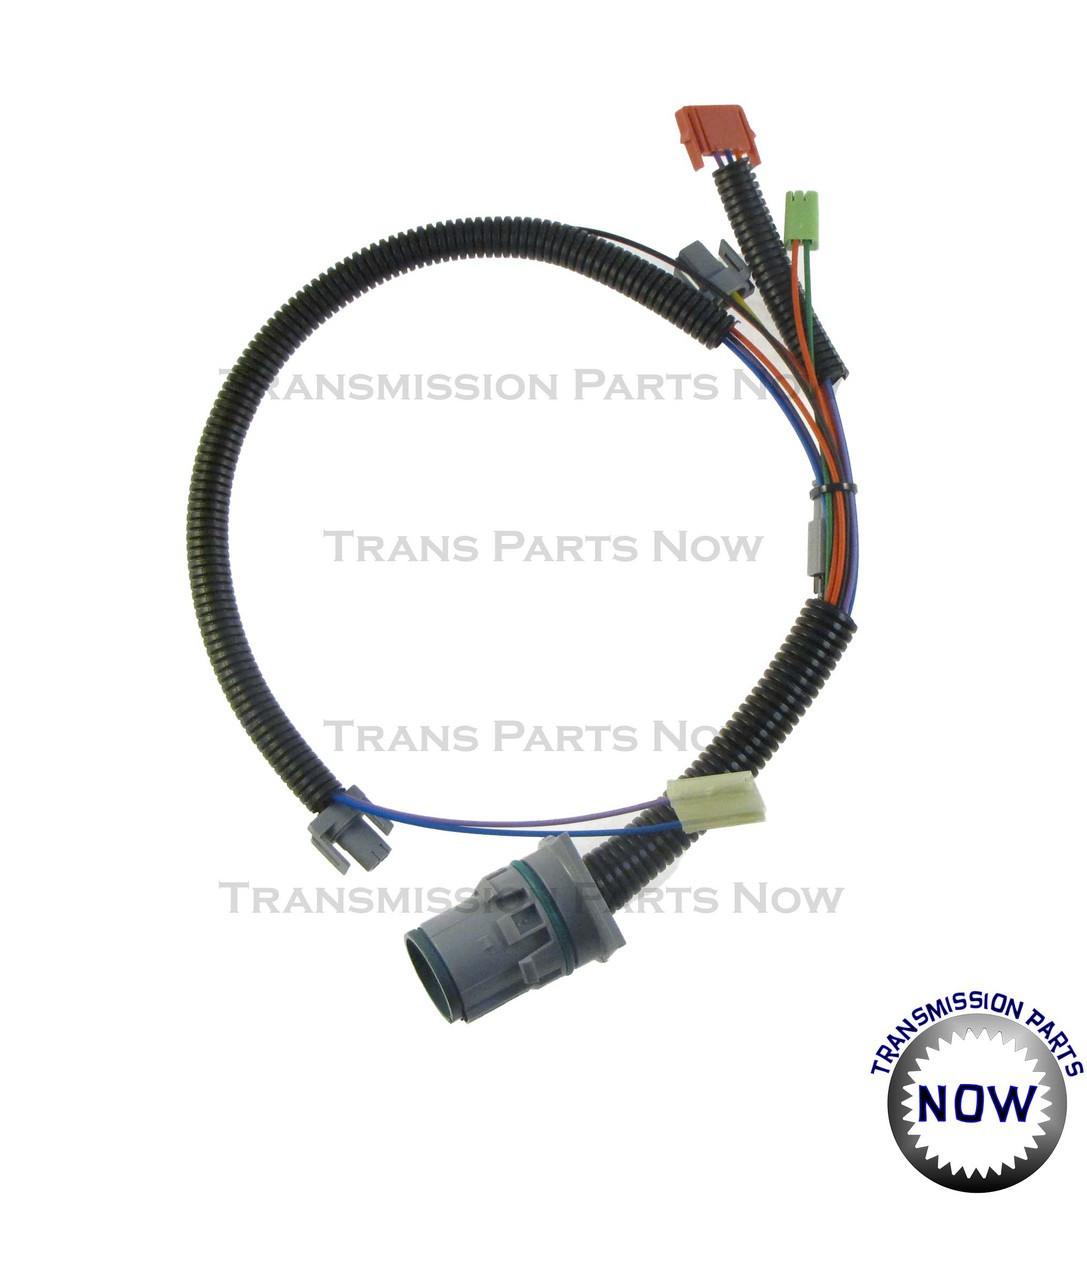 hight resolution of internal wiring harness 1991 2003 34446 free shipping to the us c5 wire harness 4r100 internal wire harness